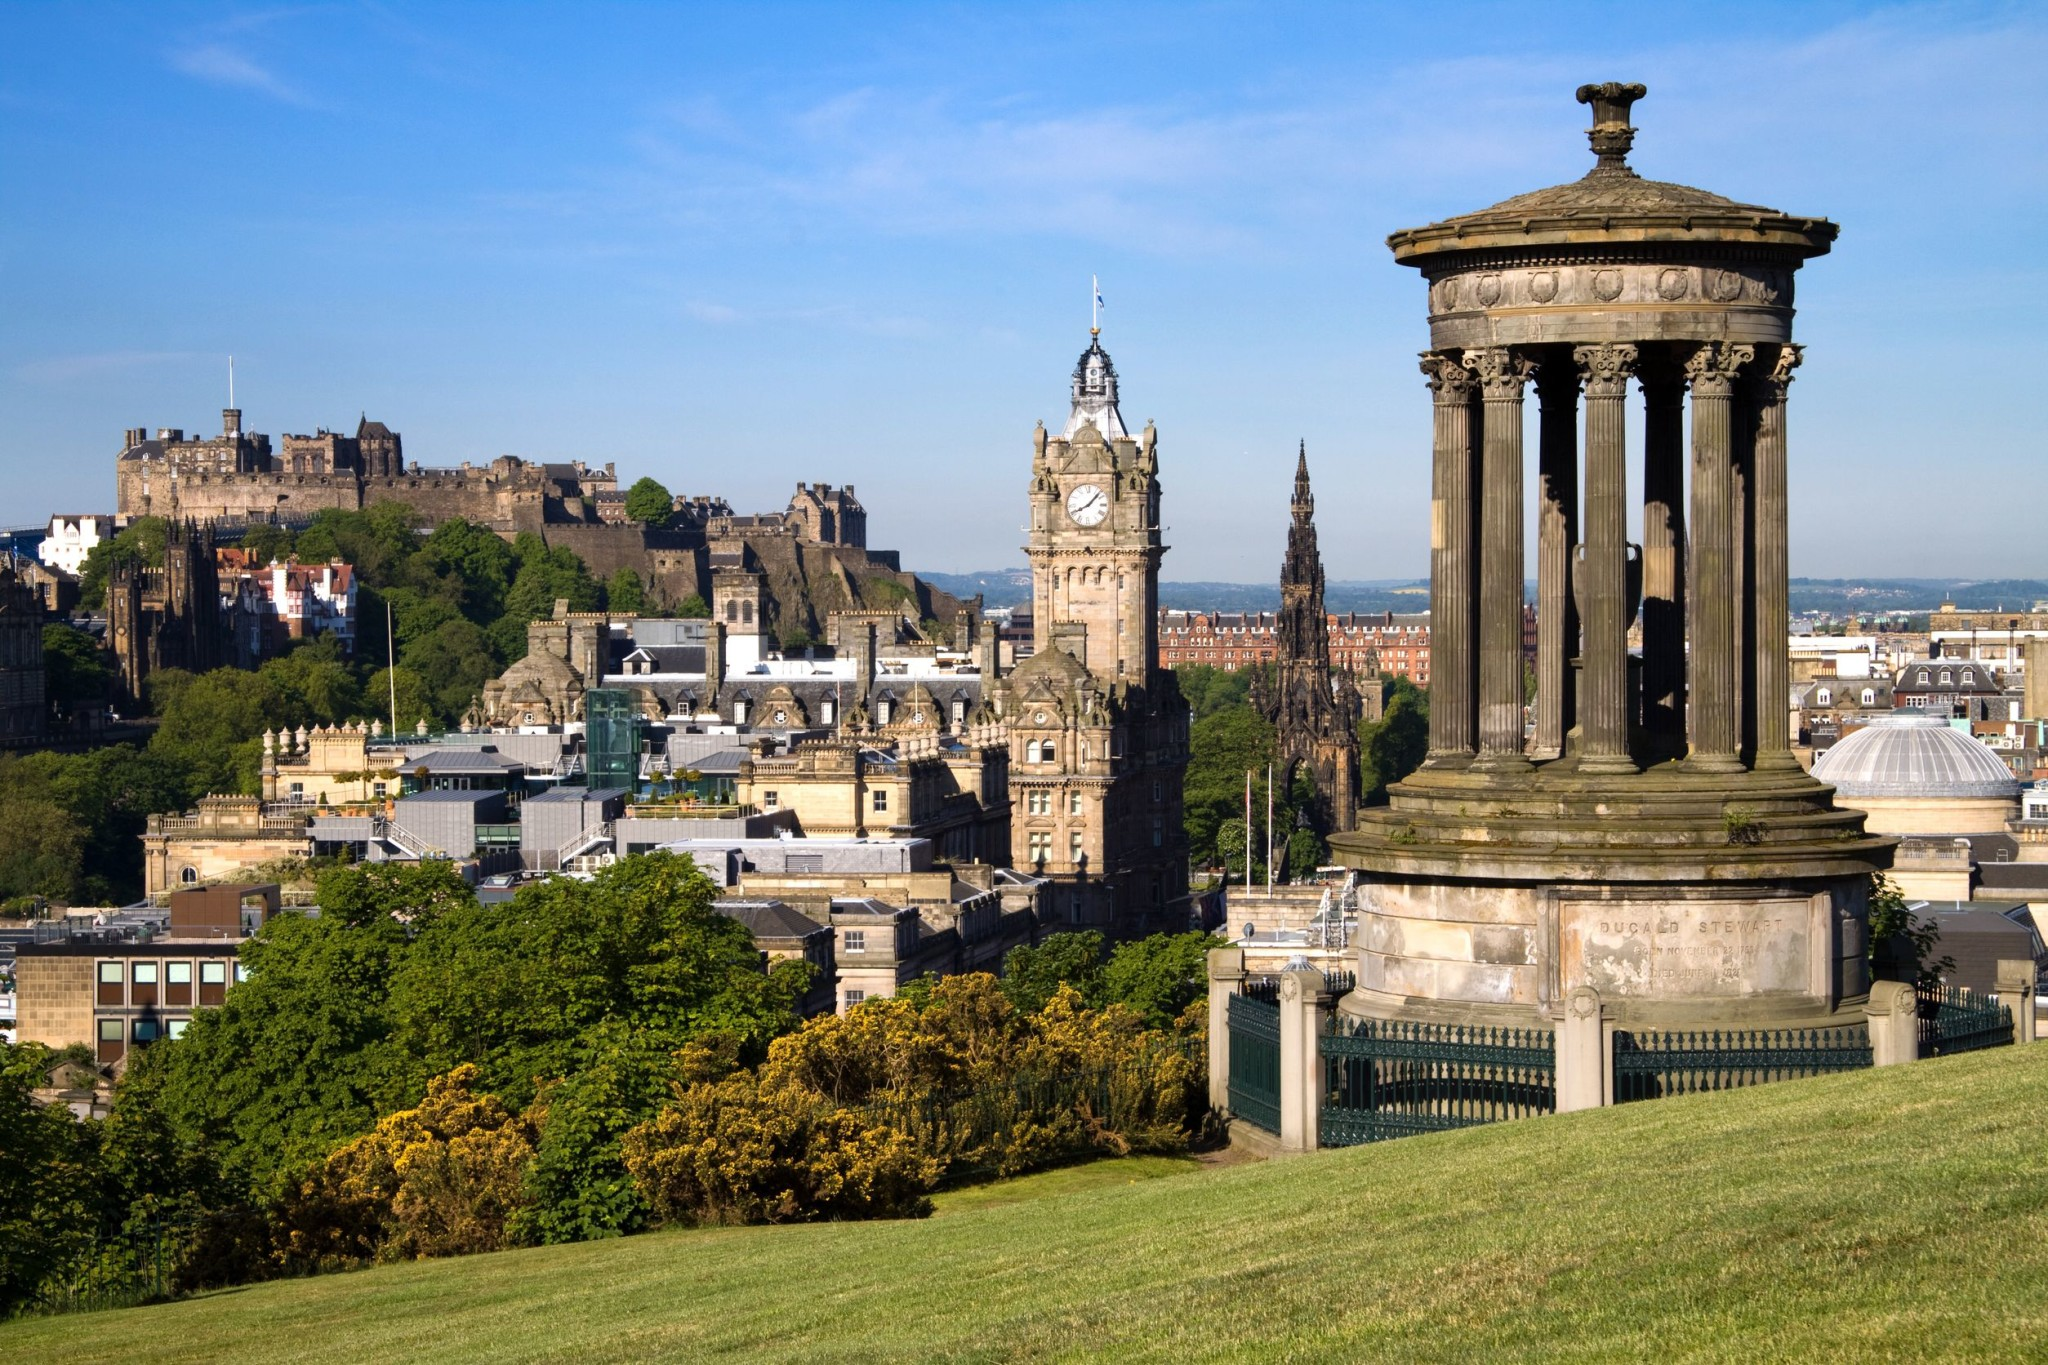 Edinburgh Scotland view from Calton Hill with the Dugald Stewart monument, Scott monument and Balmoral clock tower